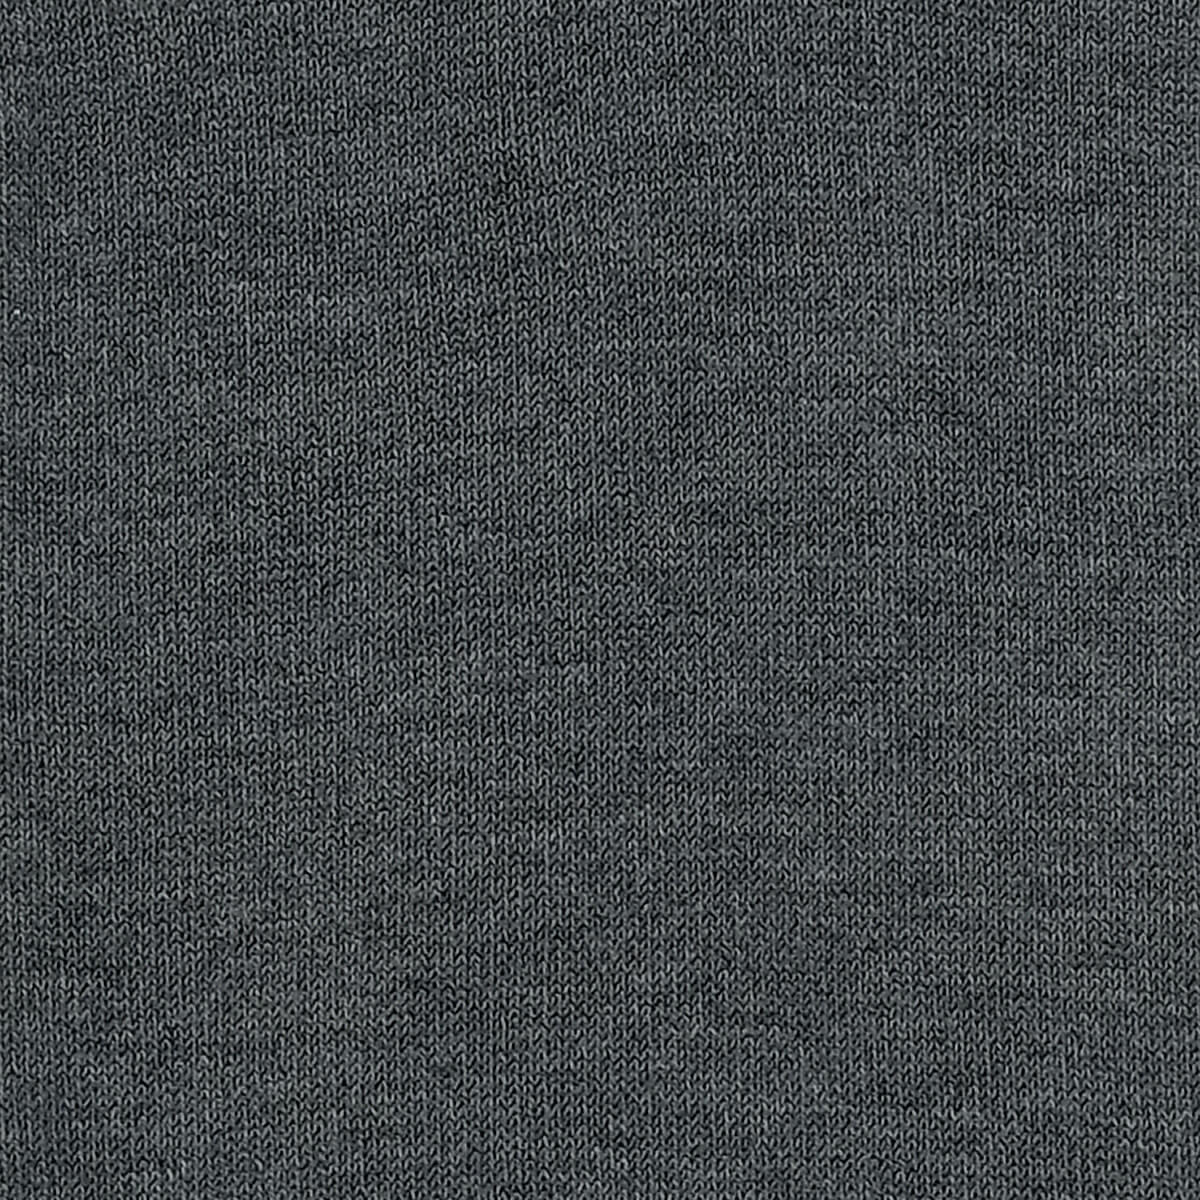 Mens Socks - Basic Luxuries Men's Socks - Dark Grey⎪Etiquette Clothiers